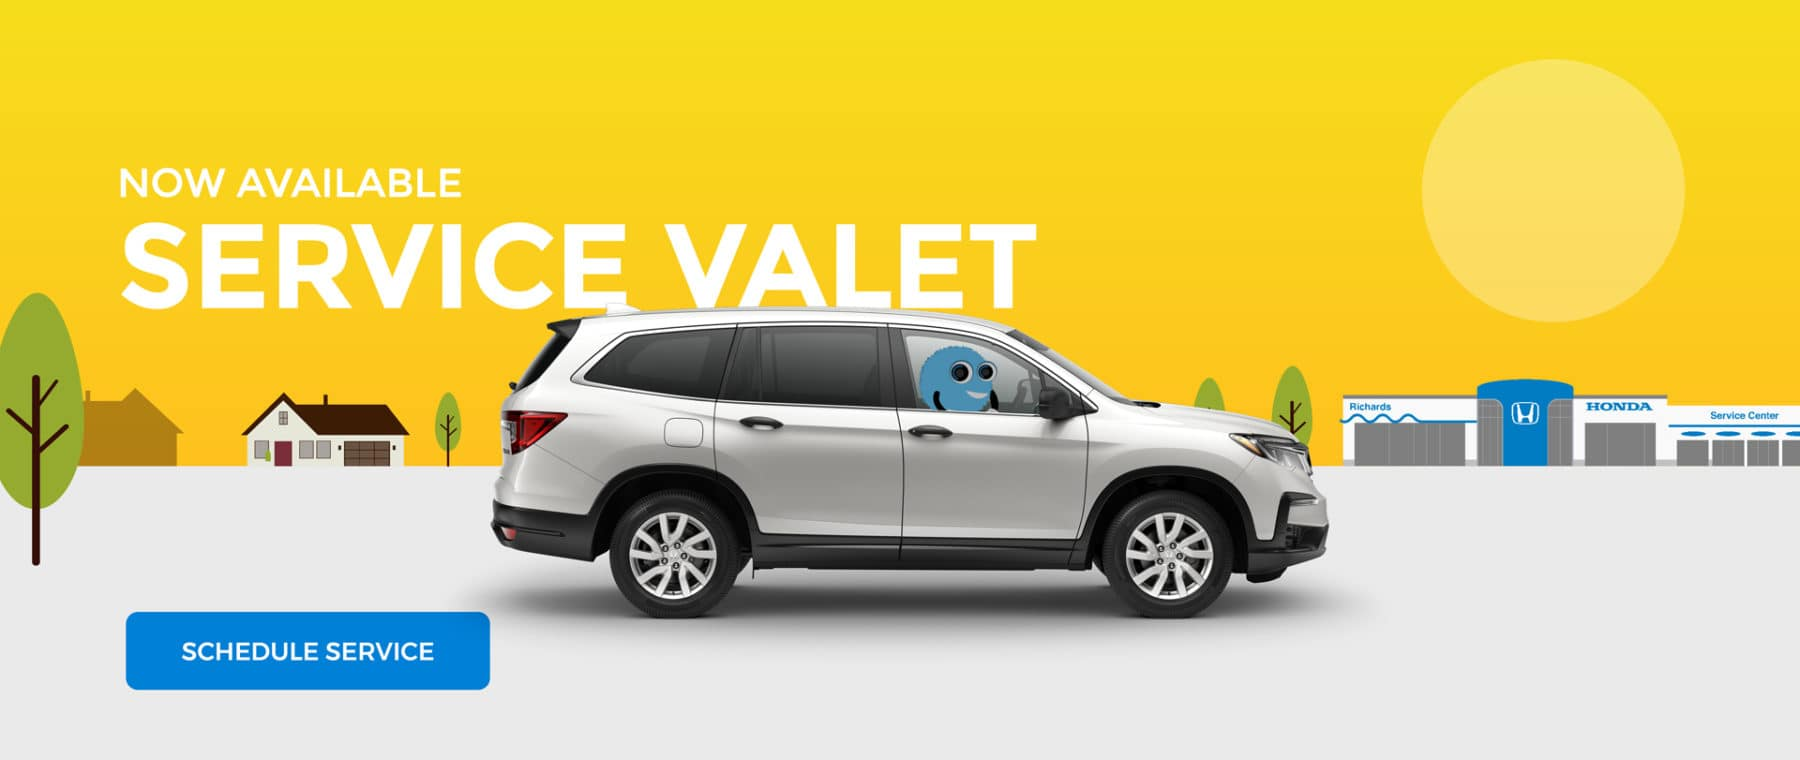 Service Valet is now available.